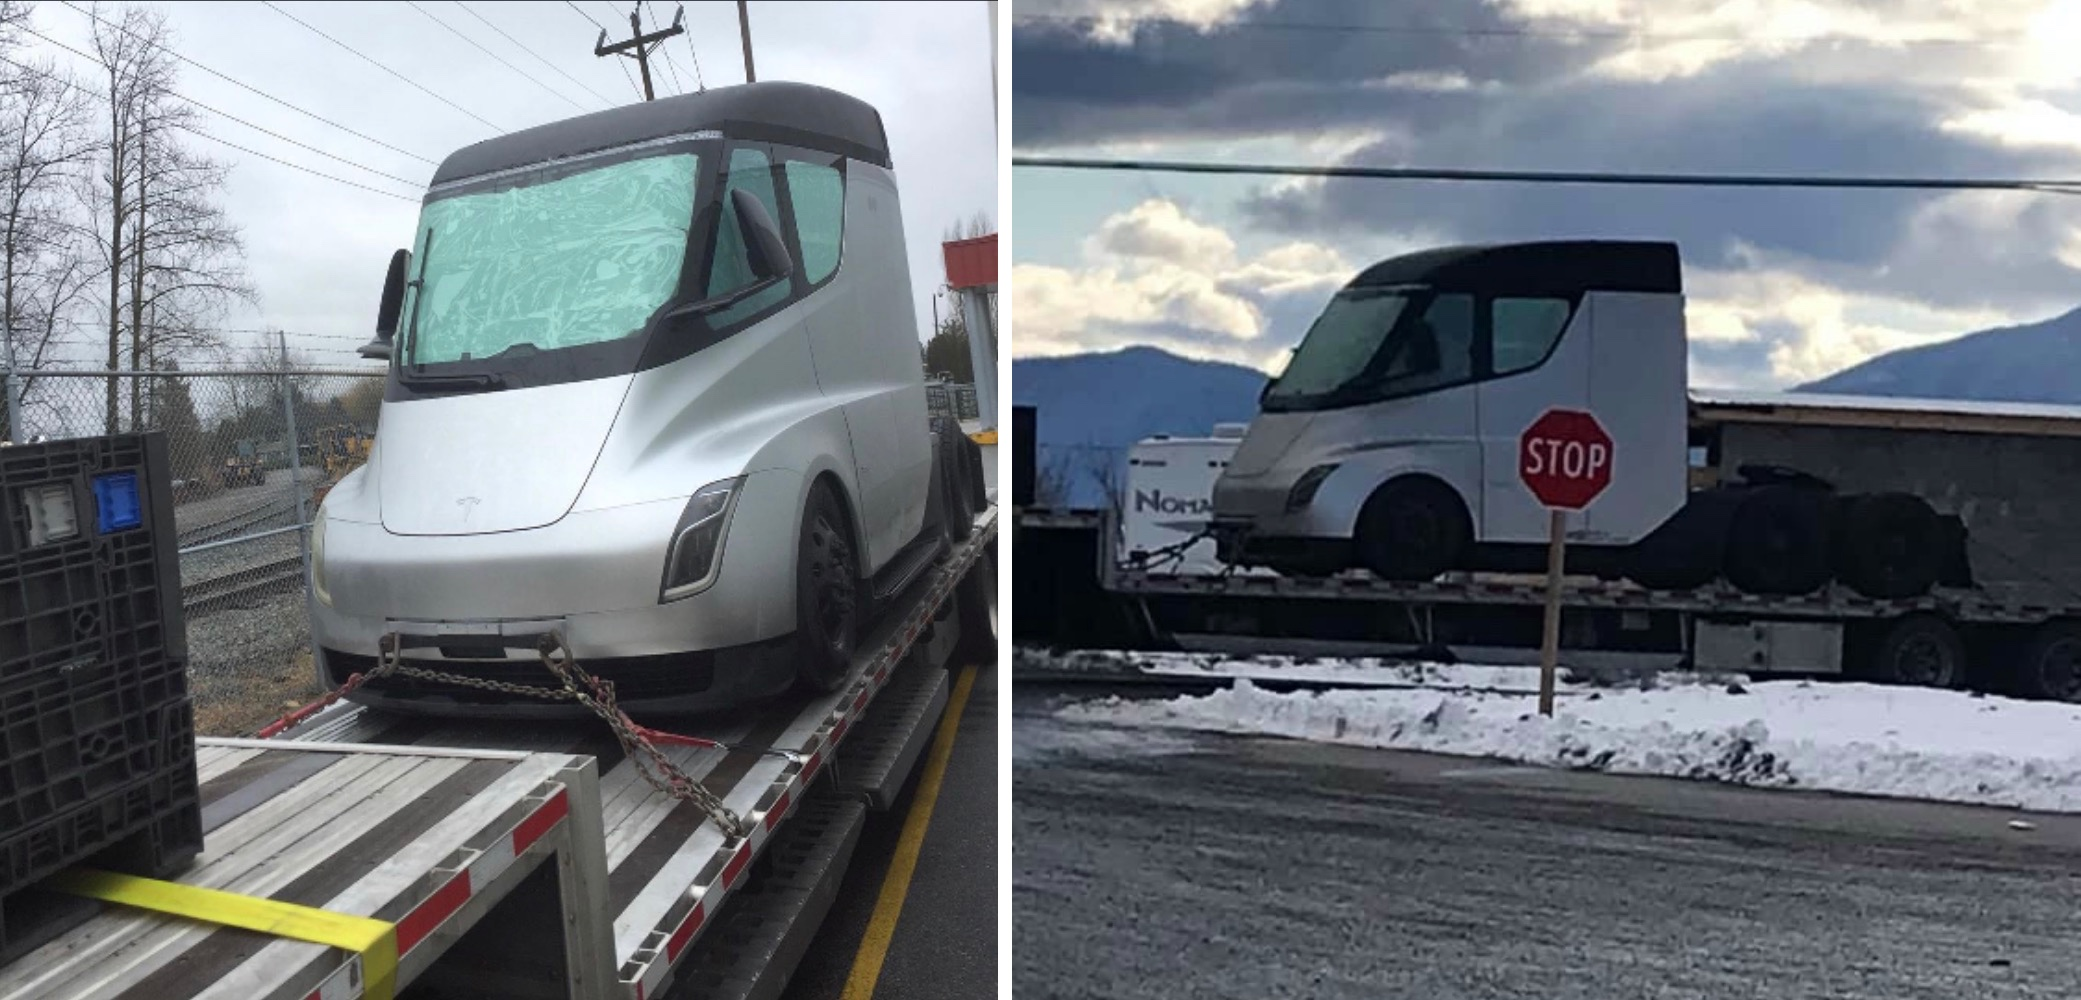 Tesla Semi prototype spotted in Canada, likely for winter testing - Electrek